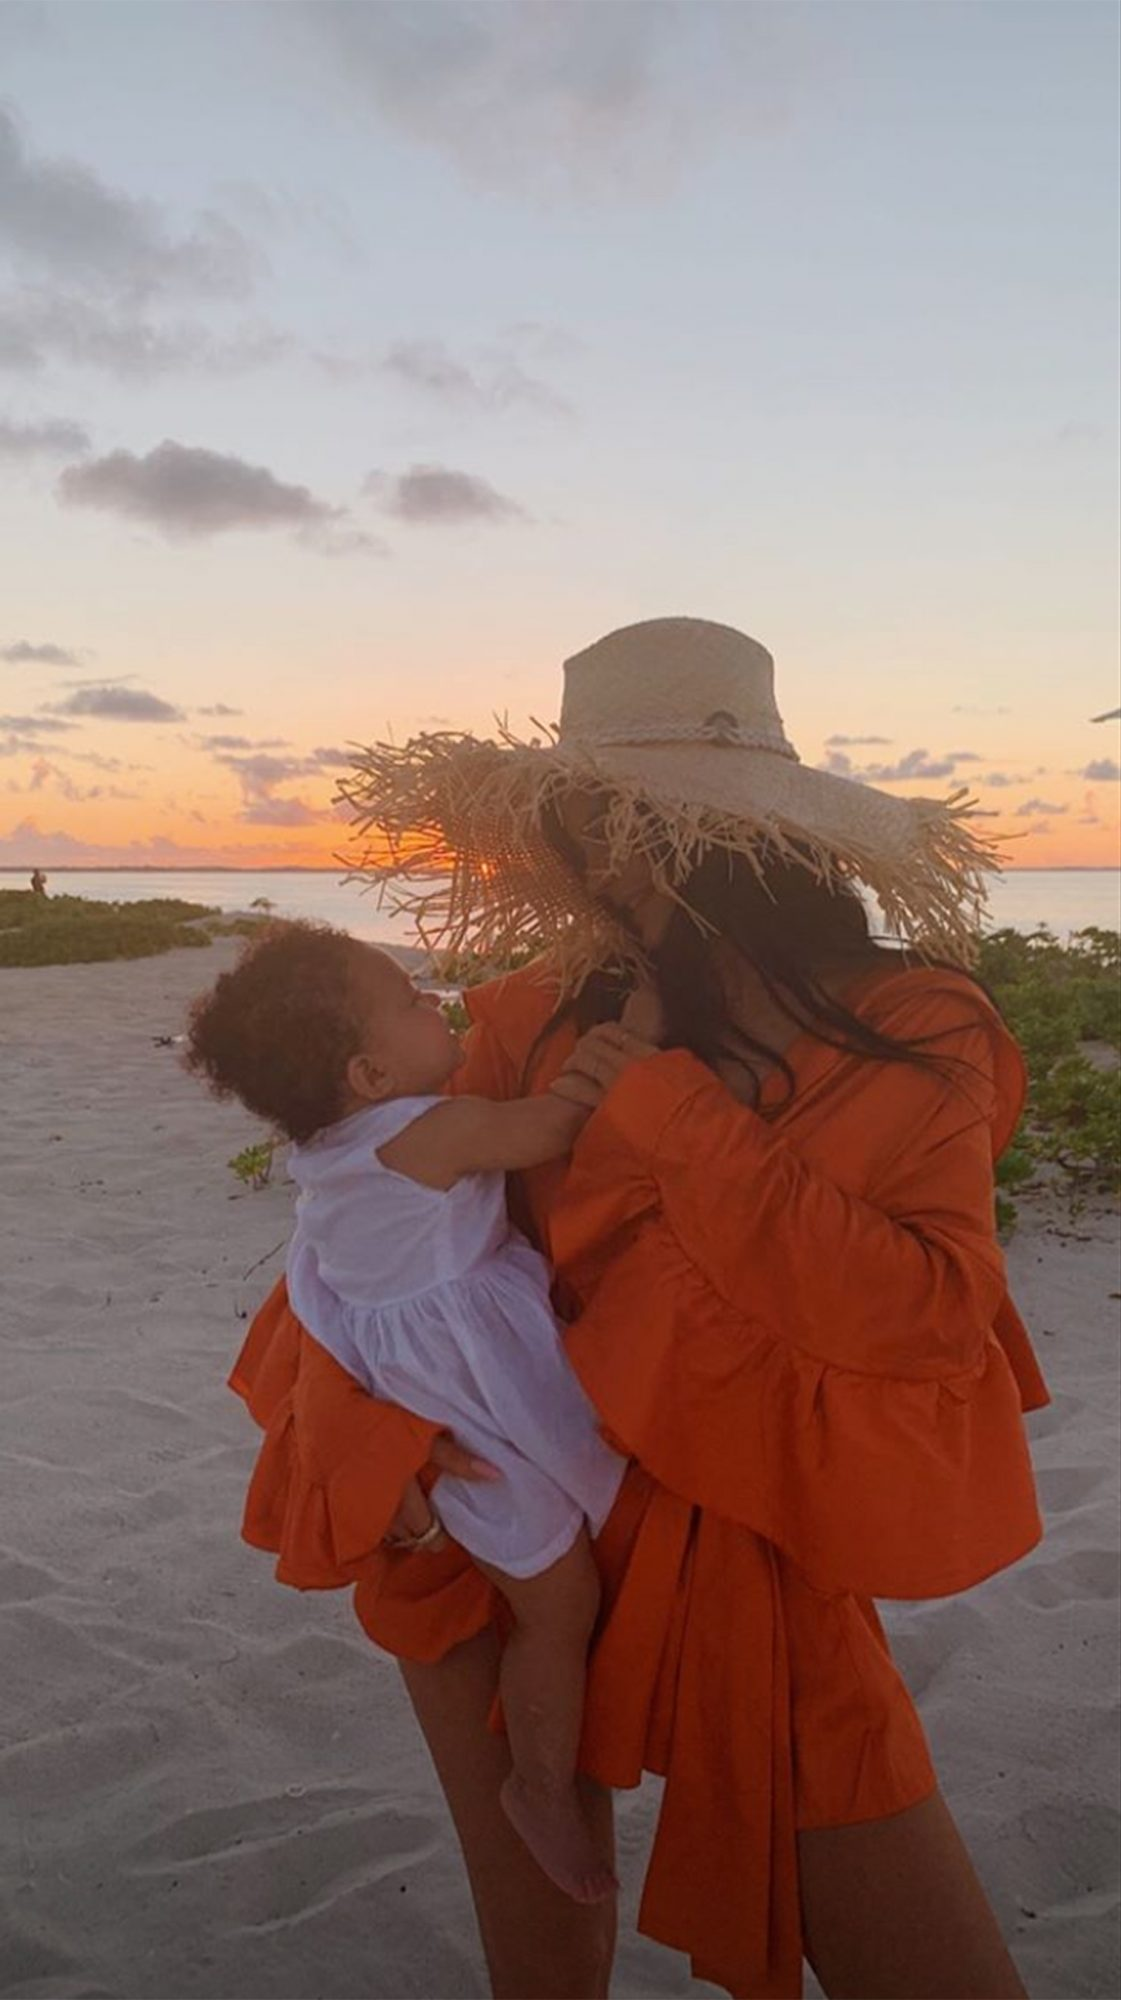 Kylie Jenner Stormi vacationCredit: Kylie Jenner/Instagram